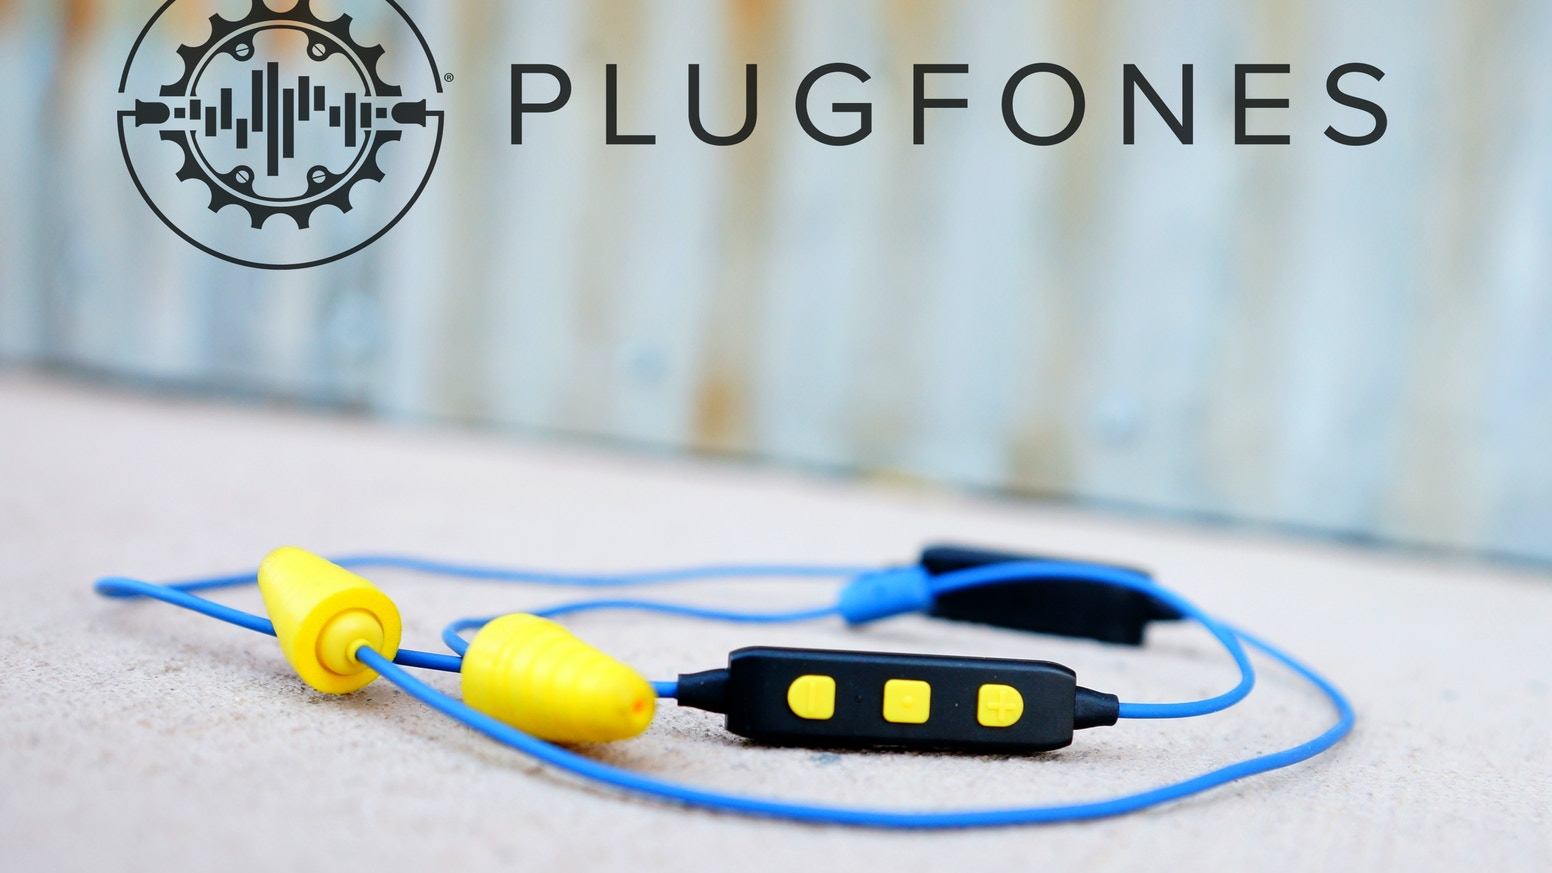 The next generation noise isolating, wireless, bluetooth earplug/earbuds hybrid unlike any others! Shipping Nov 1st 2017...